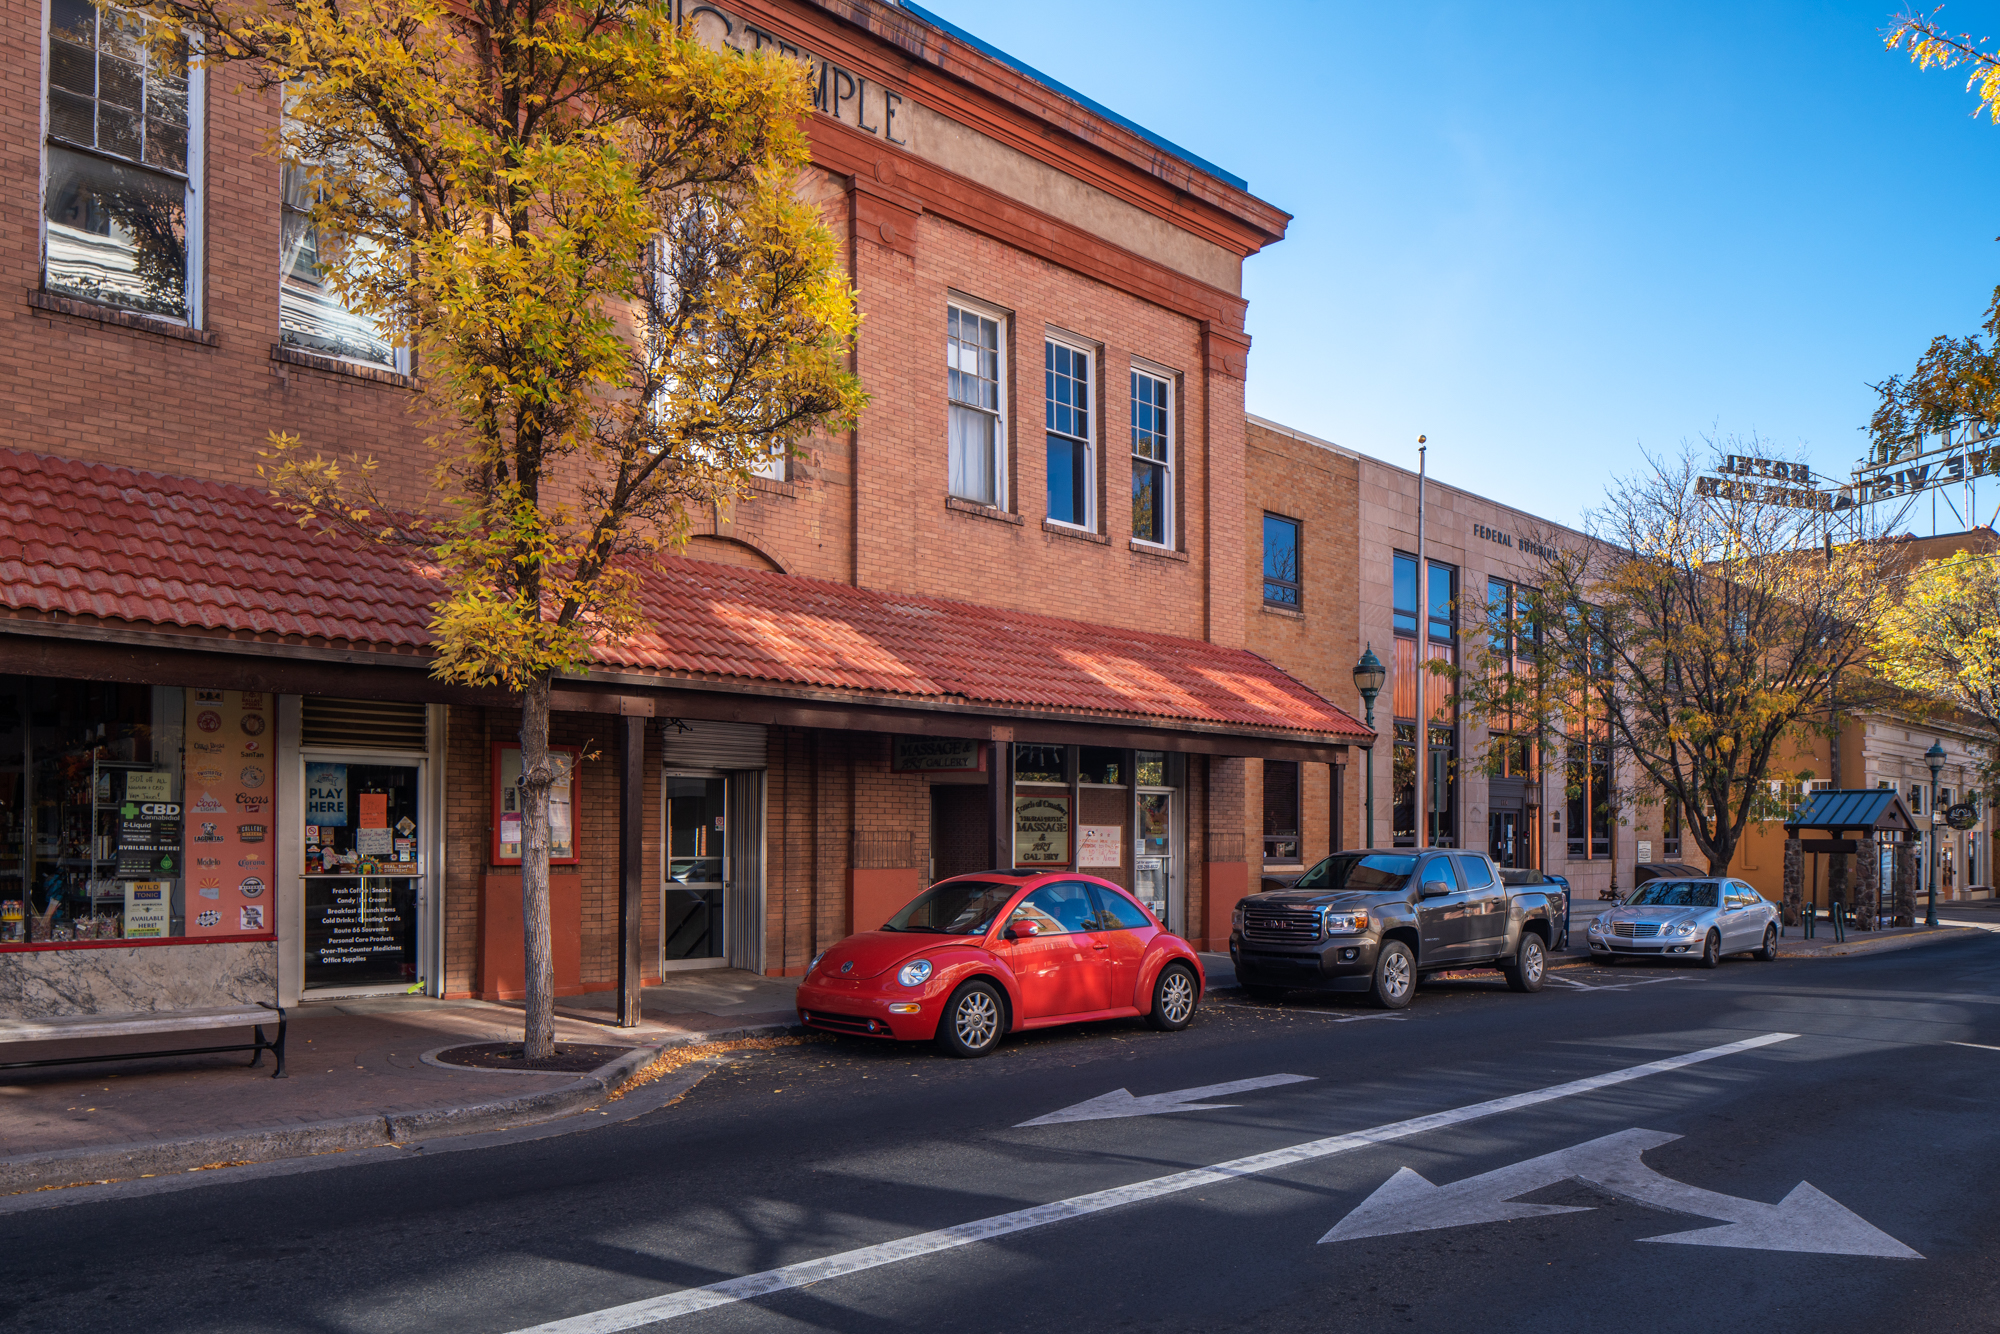 North San Francisco Avenue, Flagstaff, Arizona, October 15, 2020